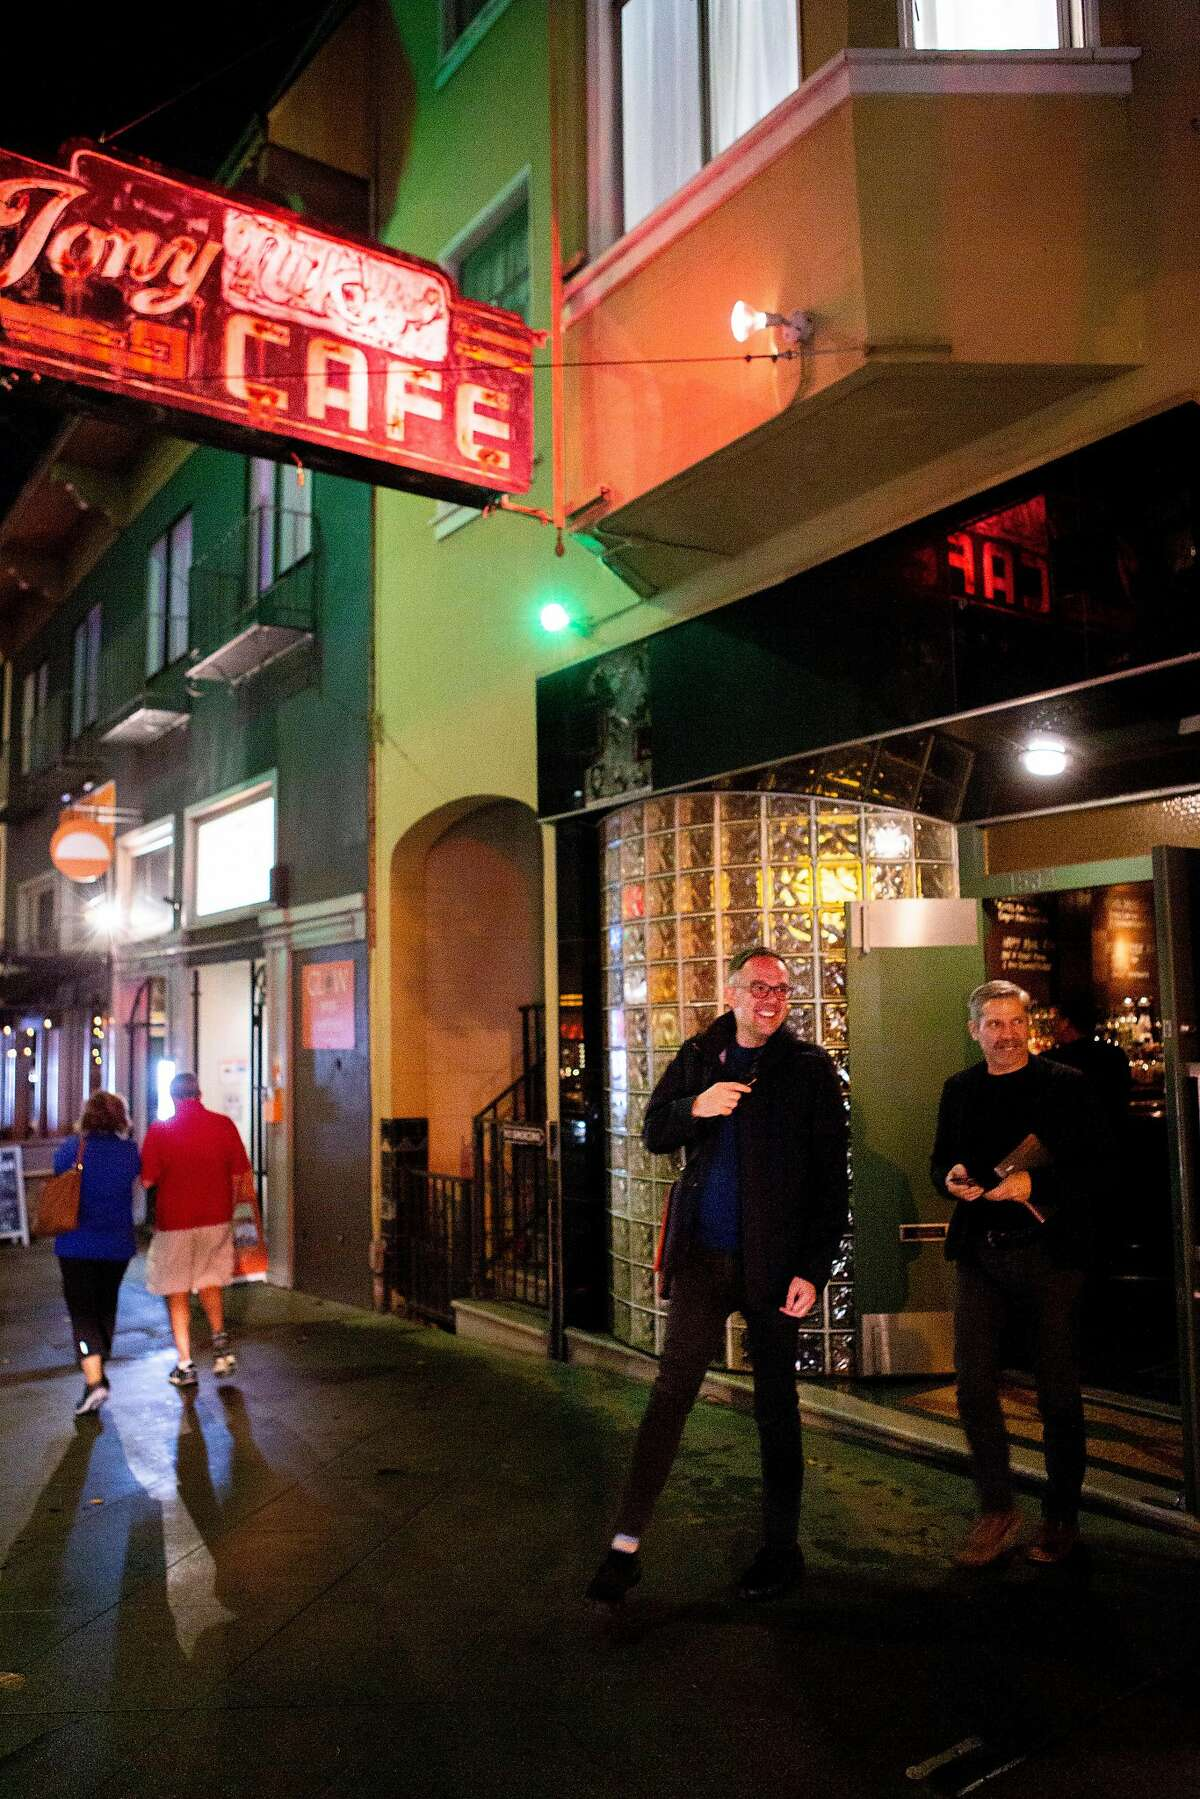 Tony Nik's in North Beach celebrated its 85th anniversary. It is now run by the grandson of the original owners, who opened it as Tony Nicco's.